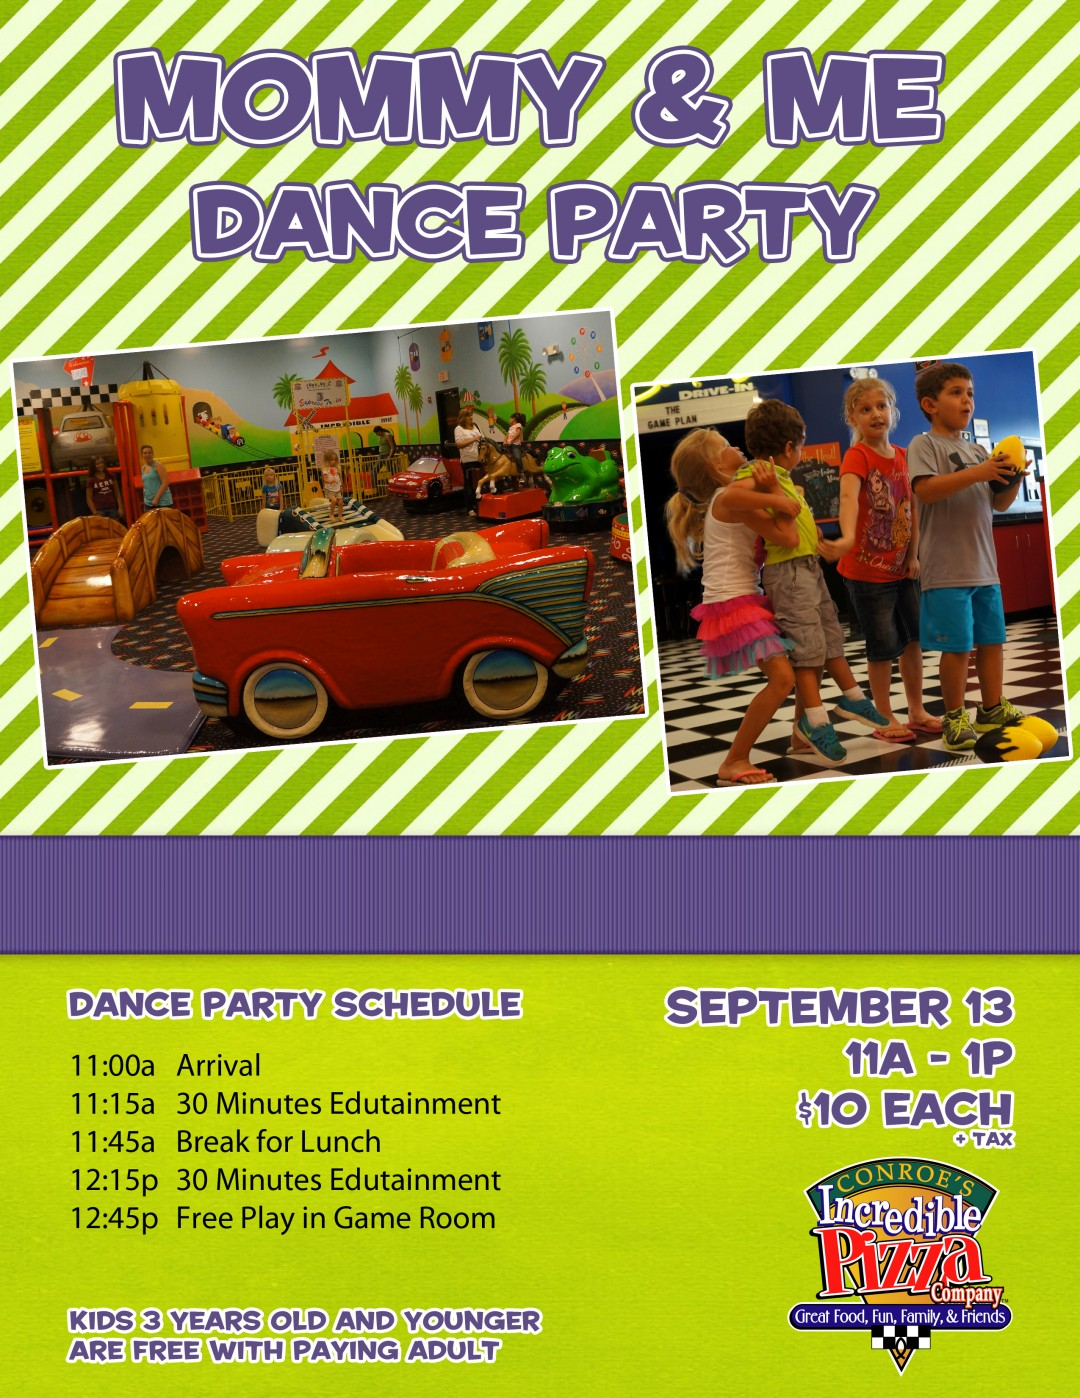 Mommy & Me Dance Party! – Wed., Sept. 13